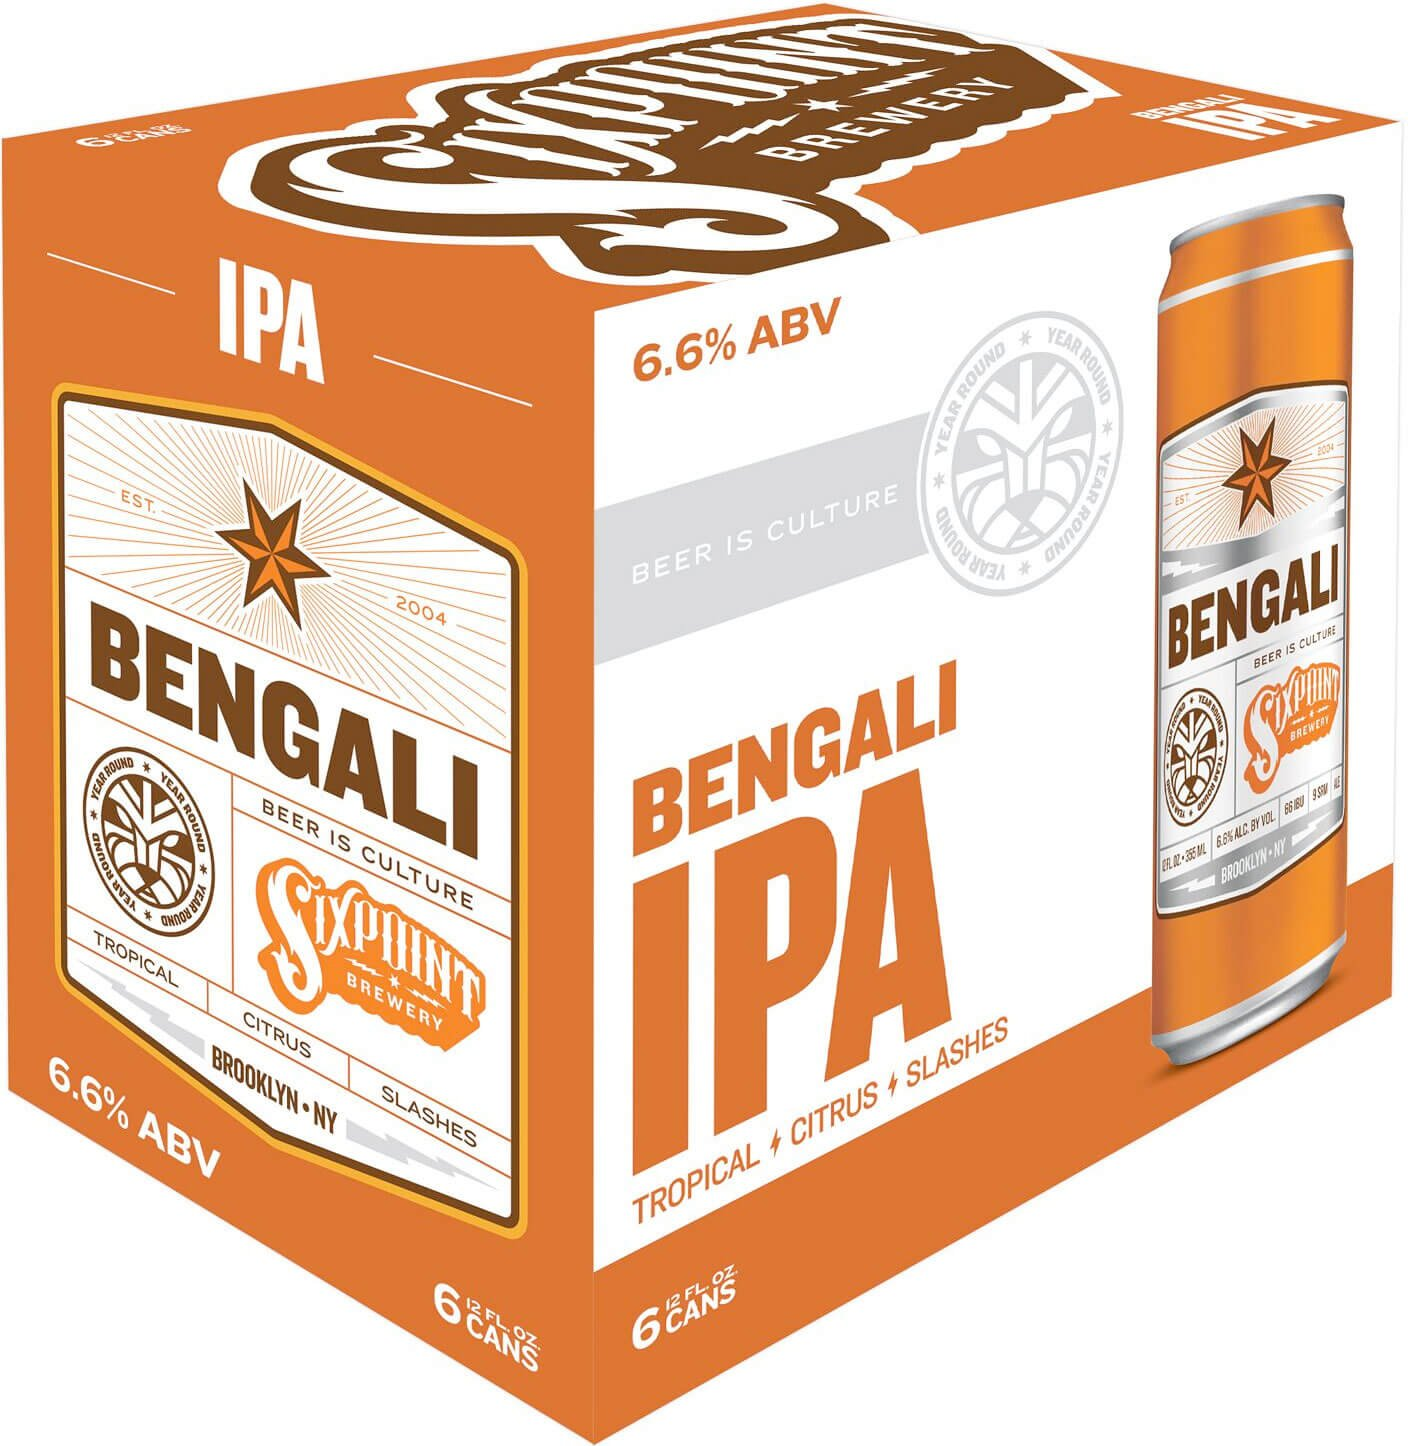 Packaging art for the Bengali by Sixpoint Brewery